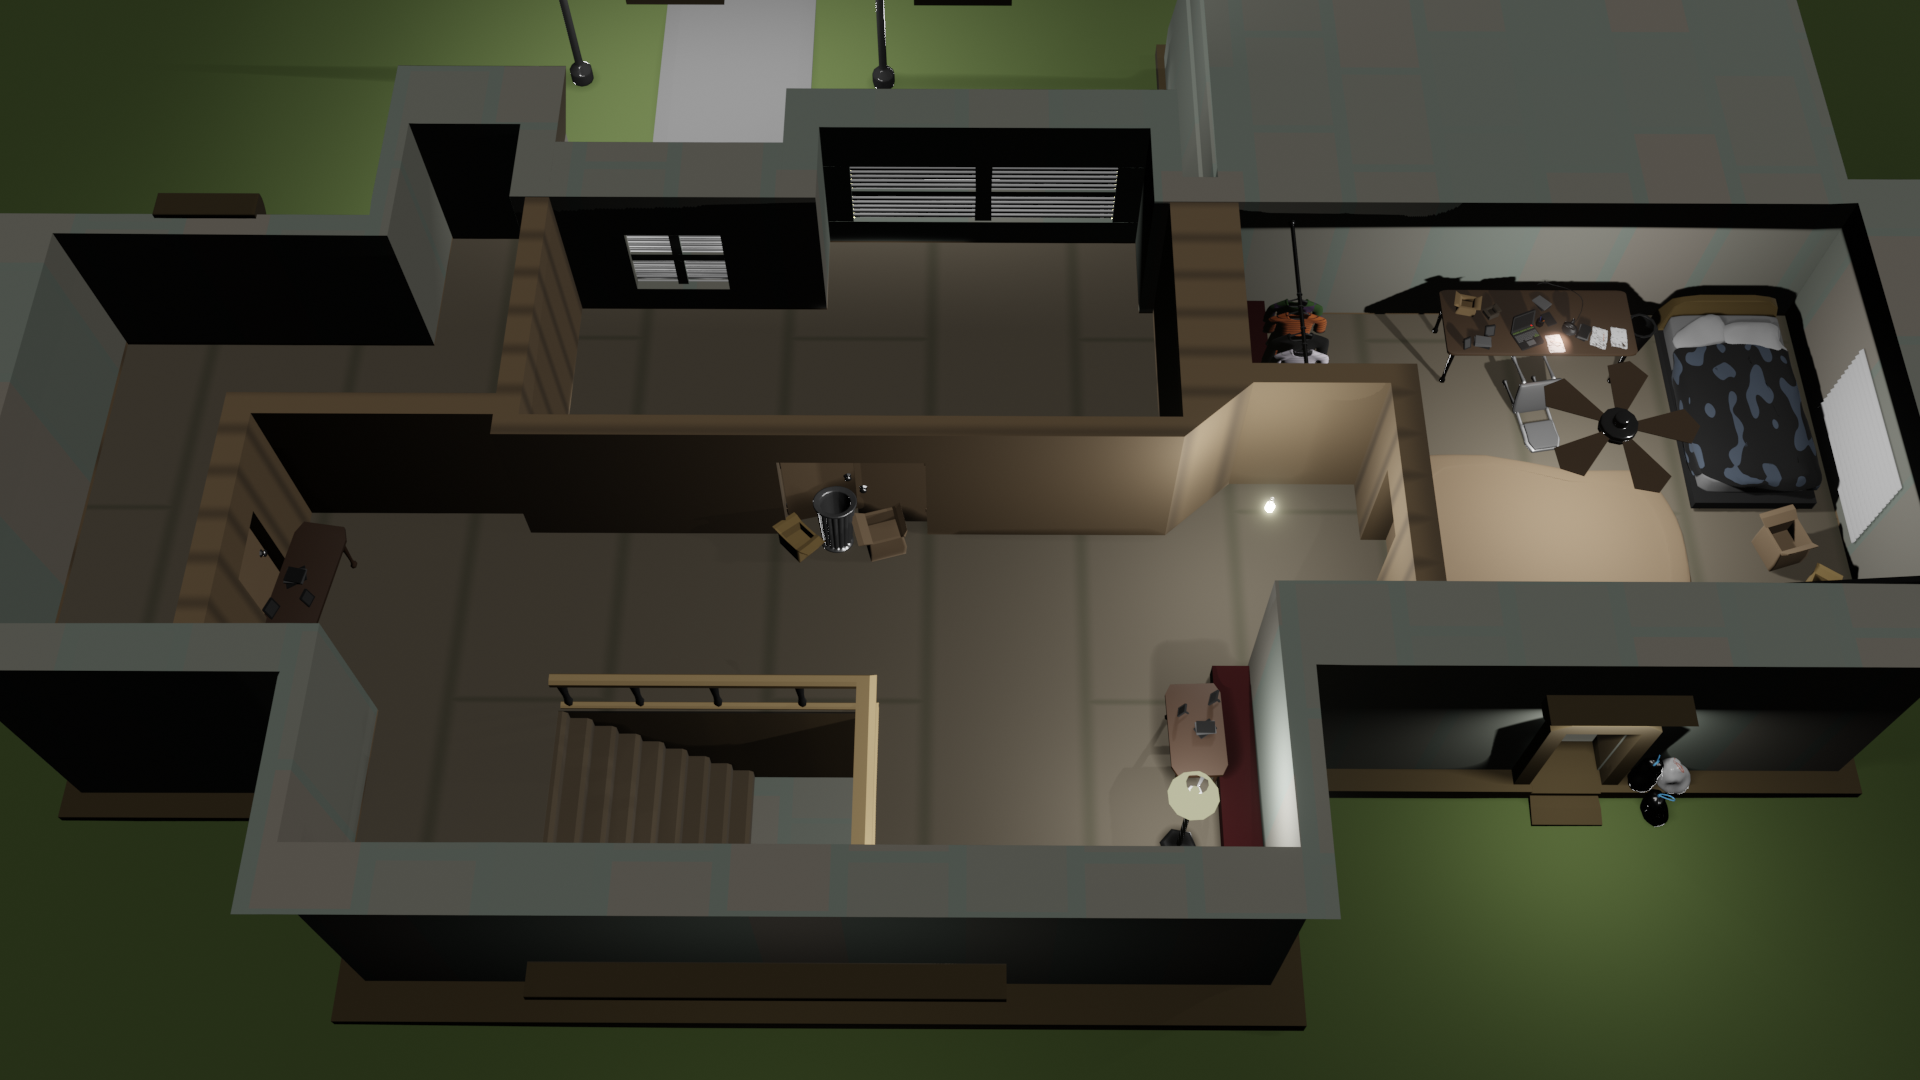 2-Floor Modular/Customizable House preview image 2